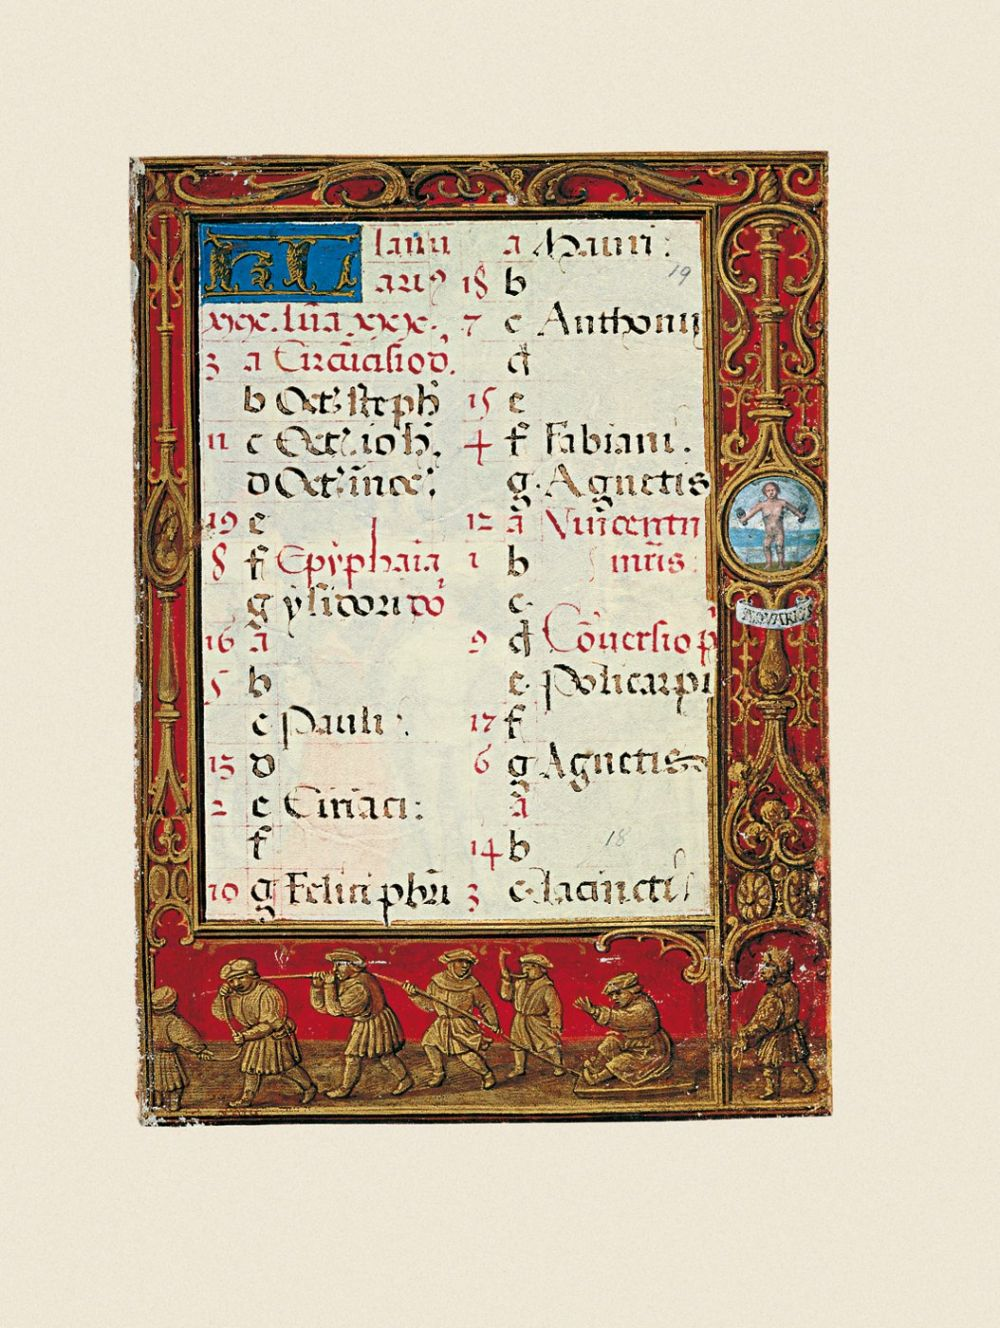 The Golf Book (Book of Hours)